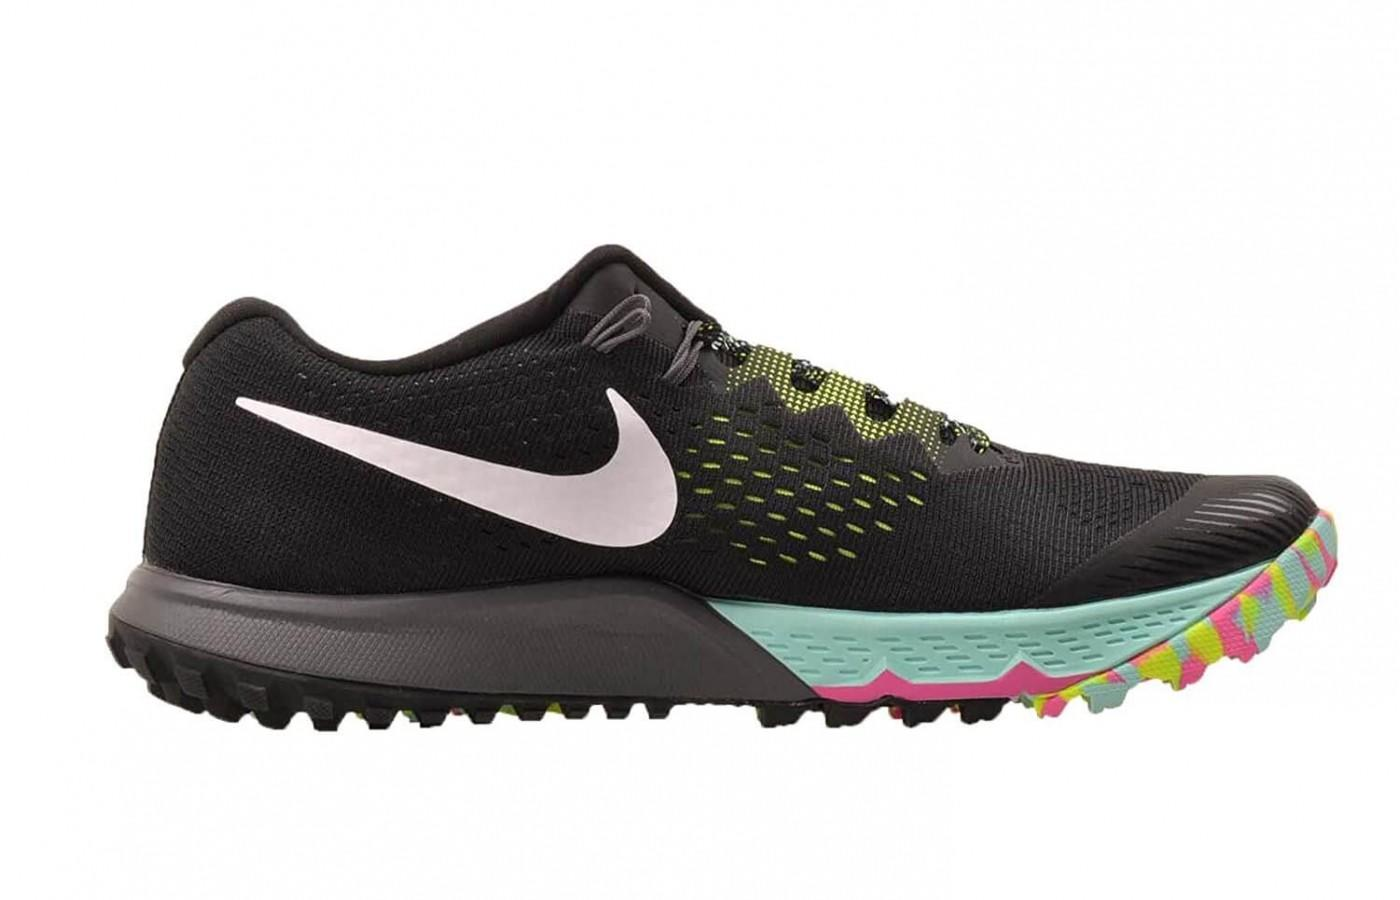 the Nike Air Zoom Terra Kiger 4 has a wider toe box than the previous version